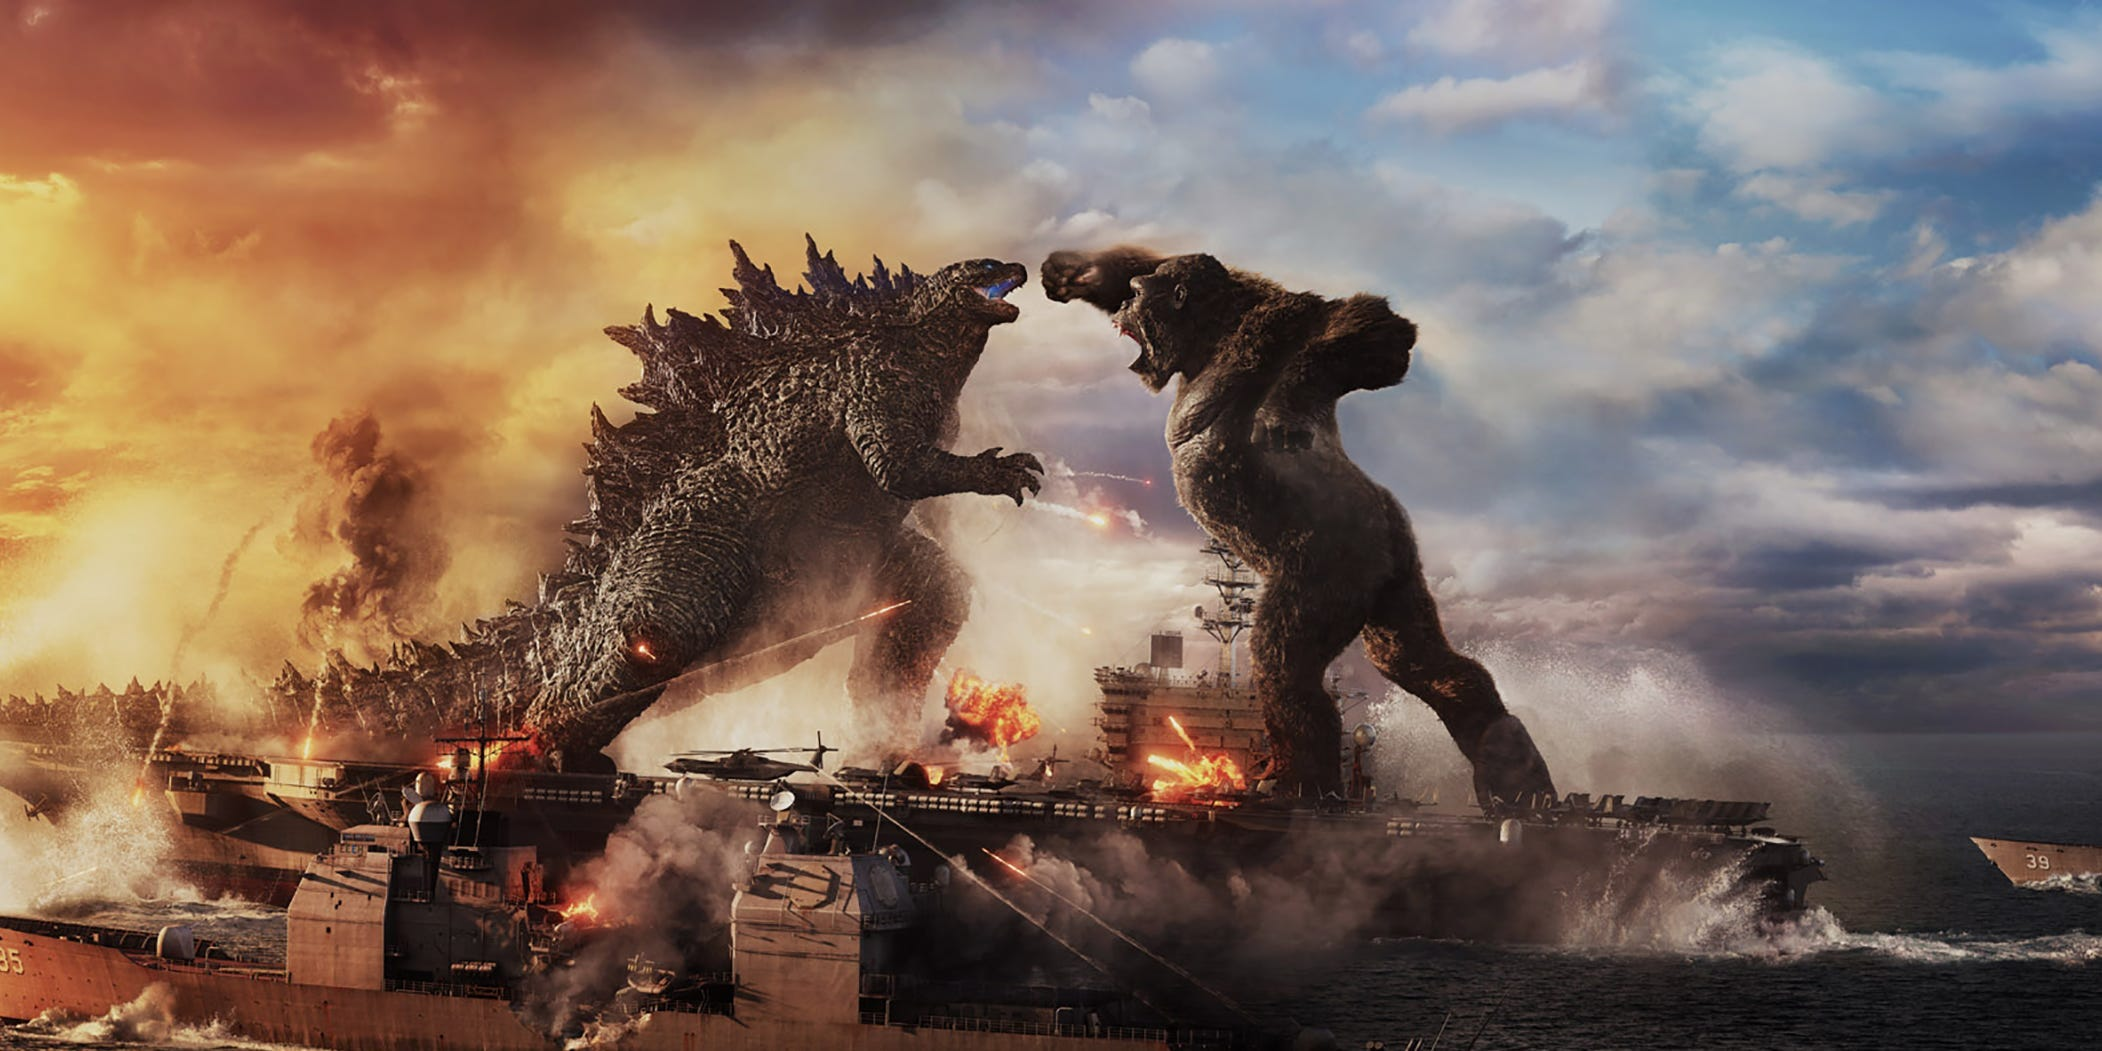 How to watch 'Godzilla vs. Kong' – the epic showdown is now playing on HBO Max and in theaters at the same time